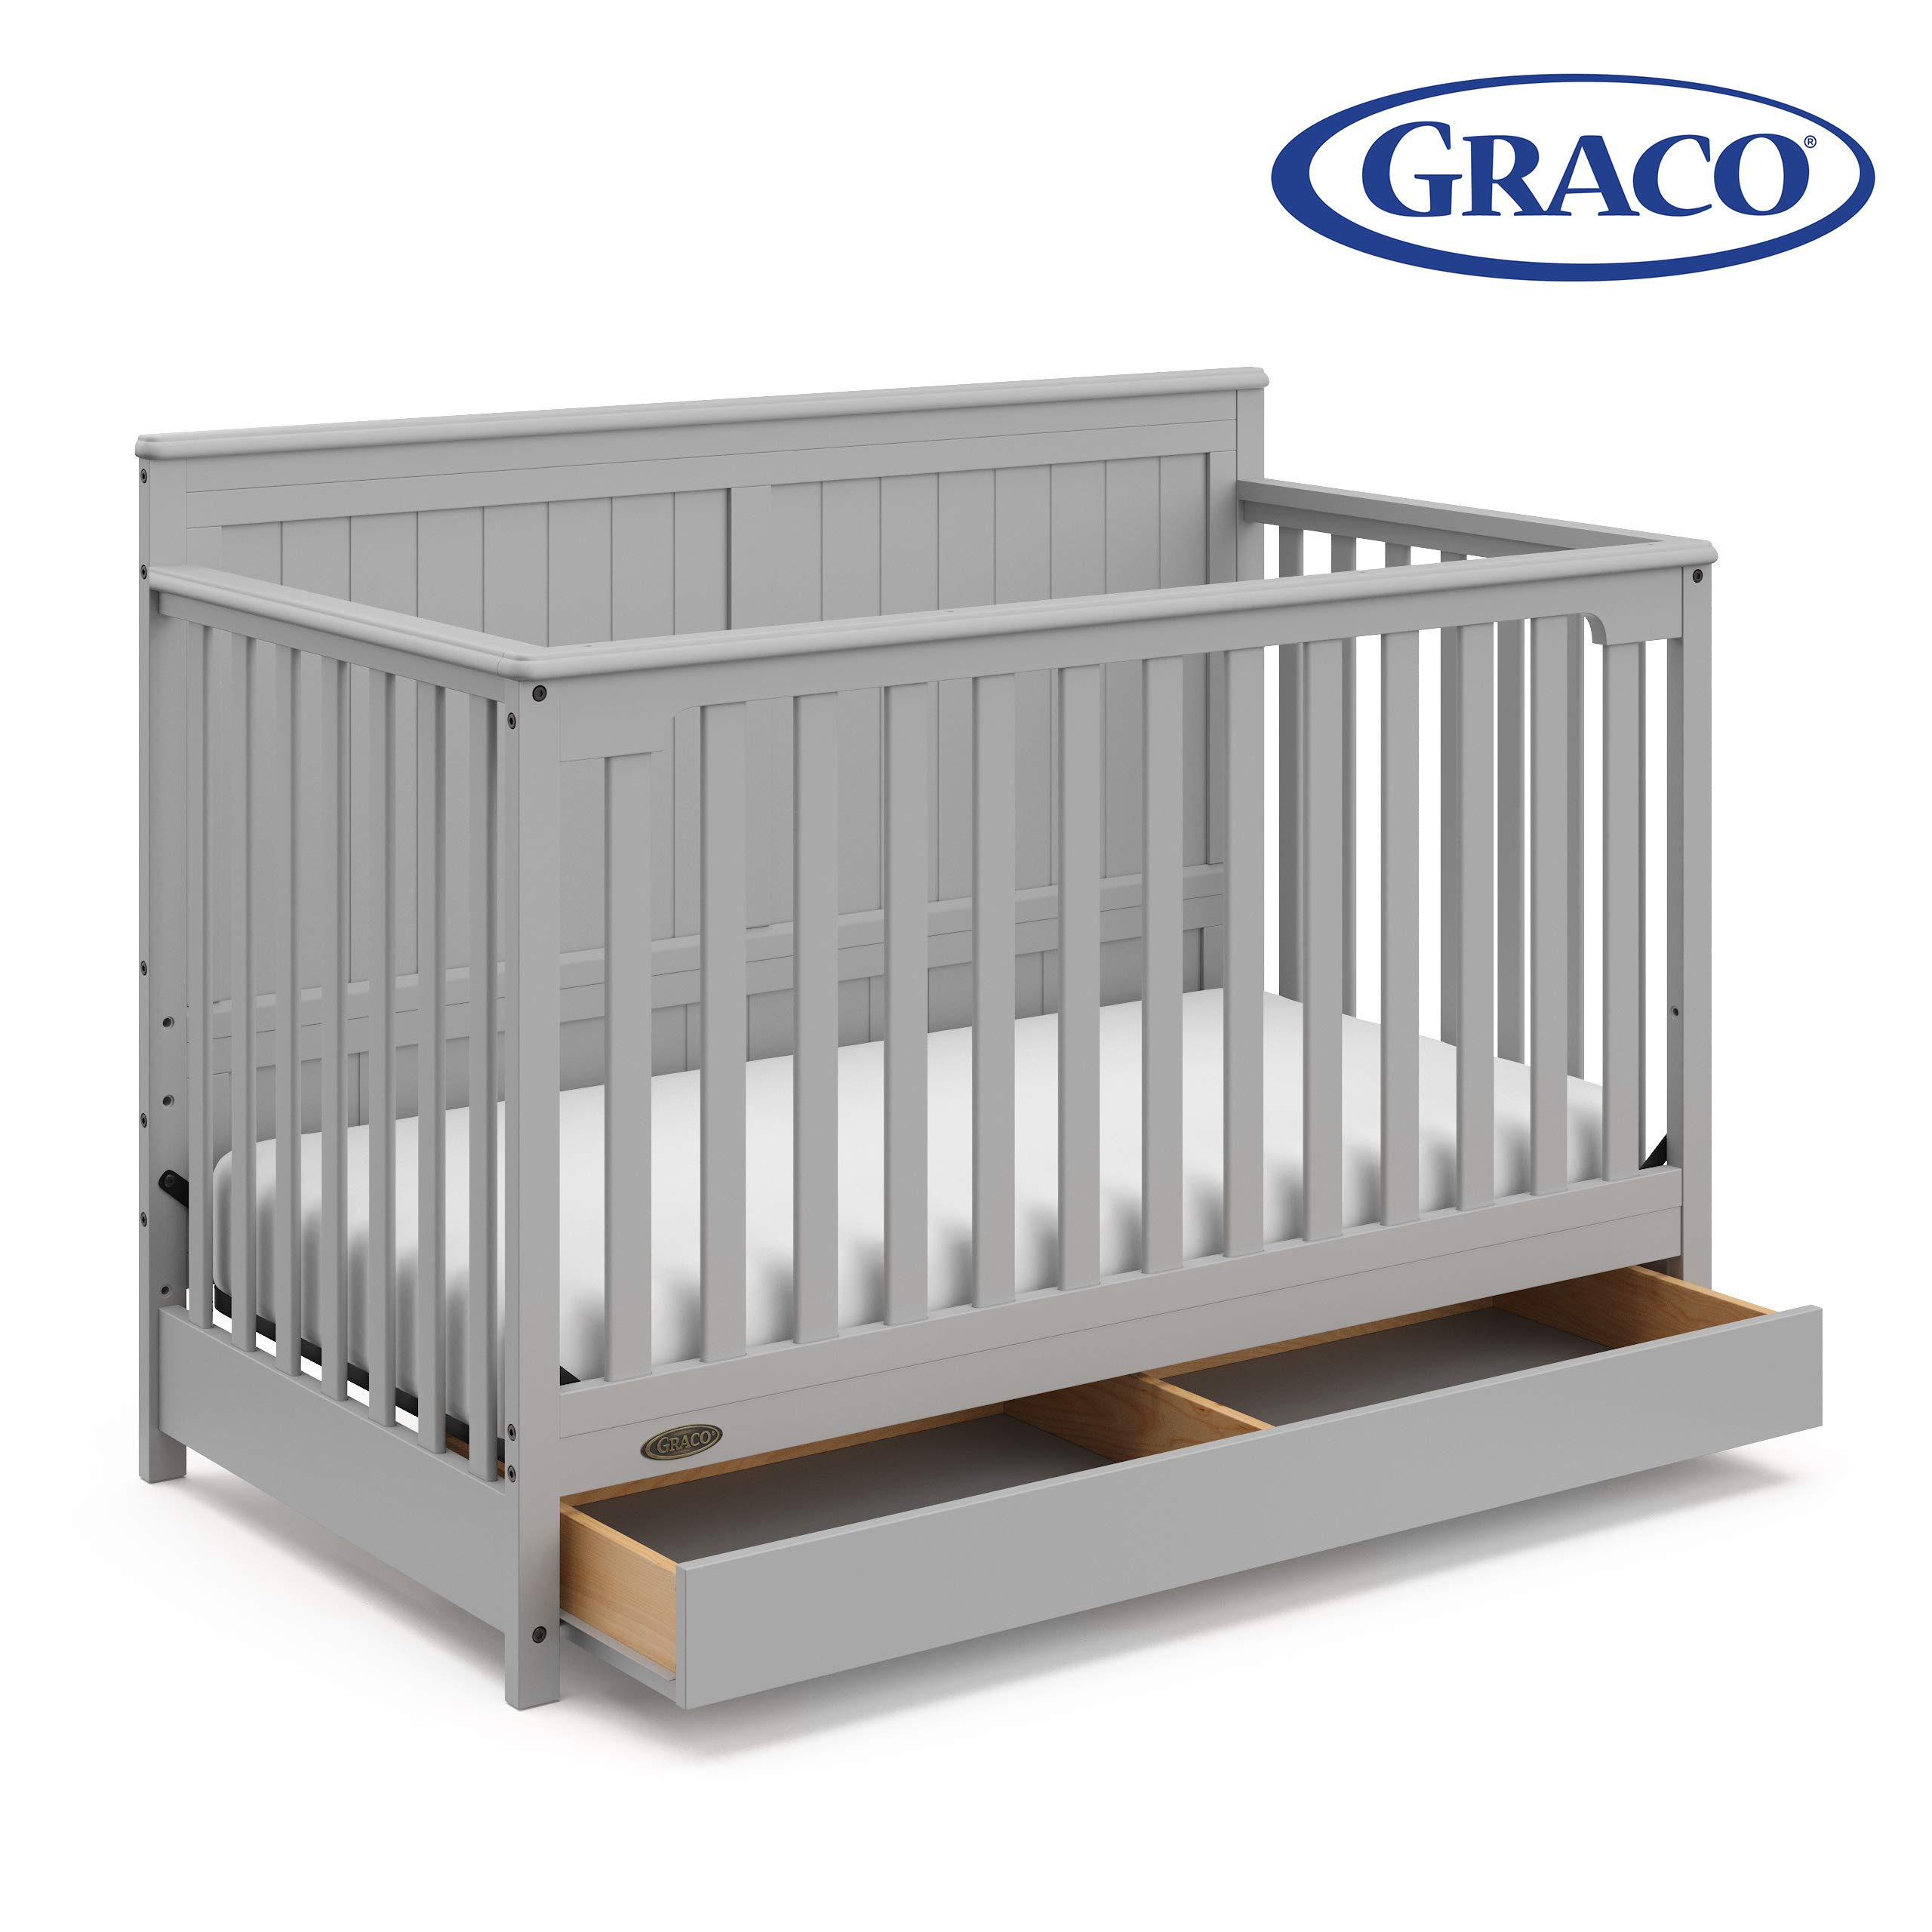 Graco Hadley 4-in-1 Convertible Crib with Drawer,Pebble Gray,Easily Converts to Toddler Bed Day Bed or Full Bed,Three Position Adjustable Height Mattress,Some Assembly Required (Mattress Not Included) by Stork Craft